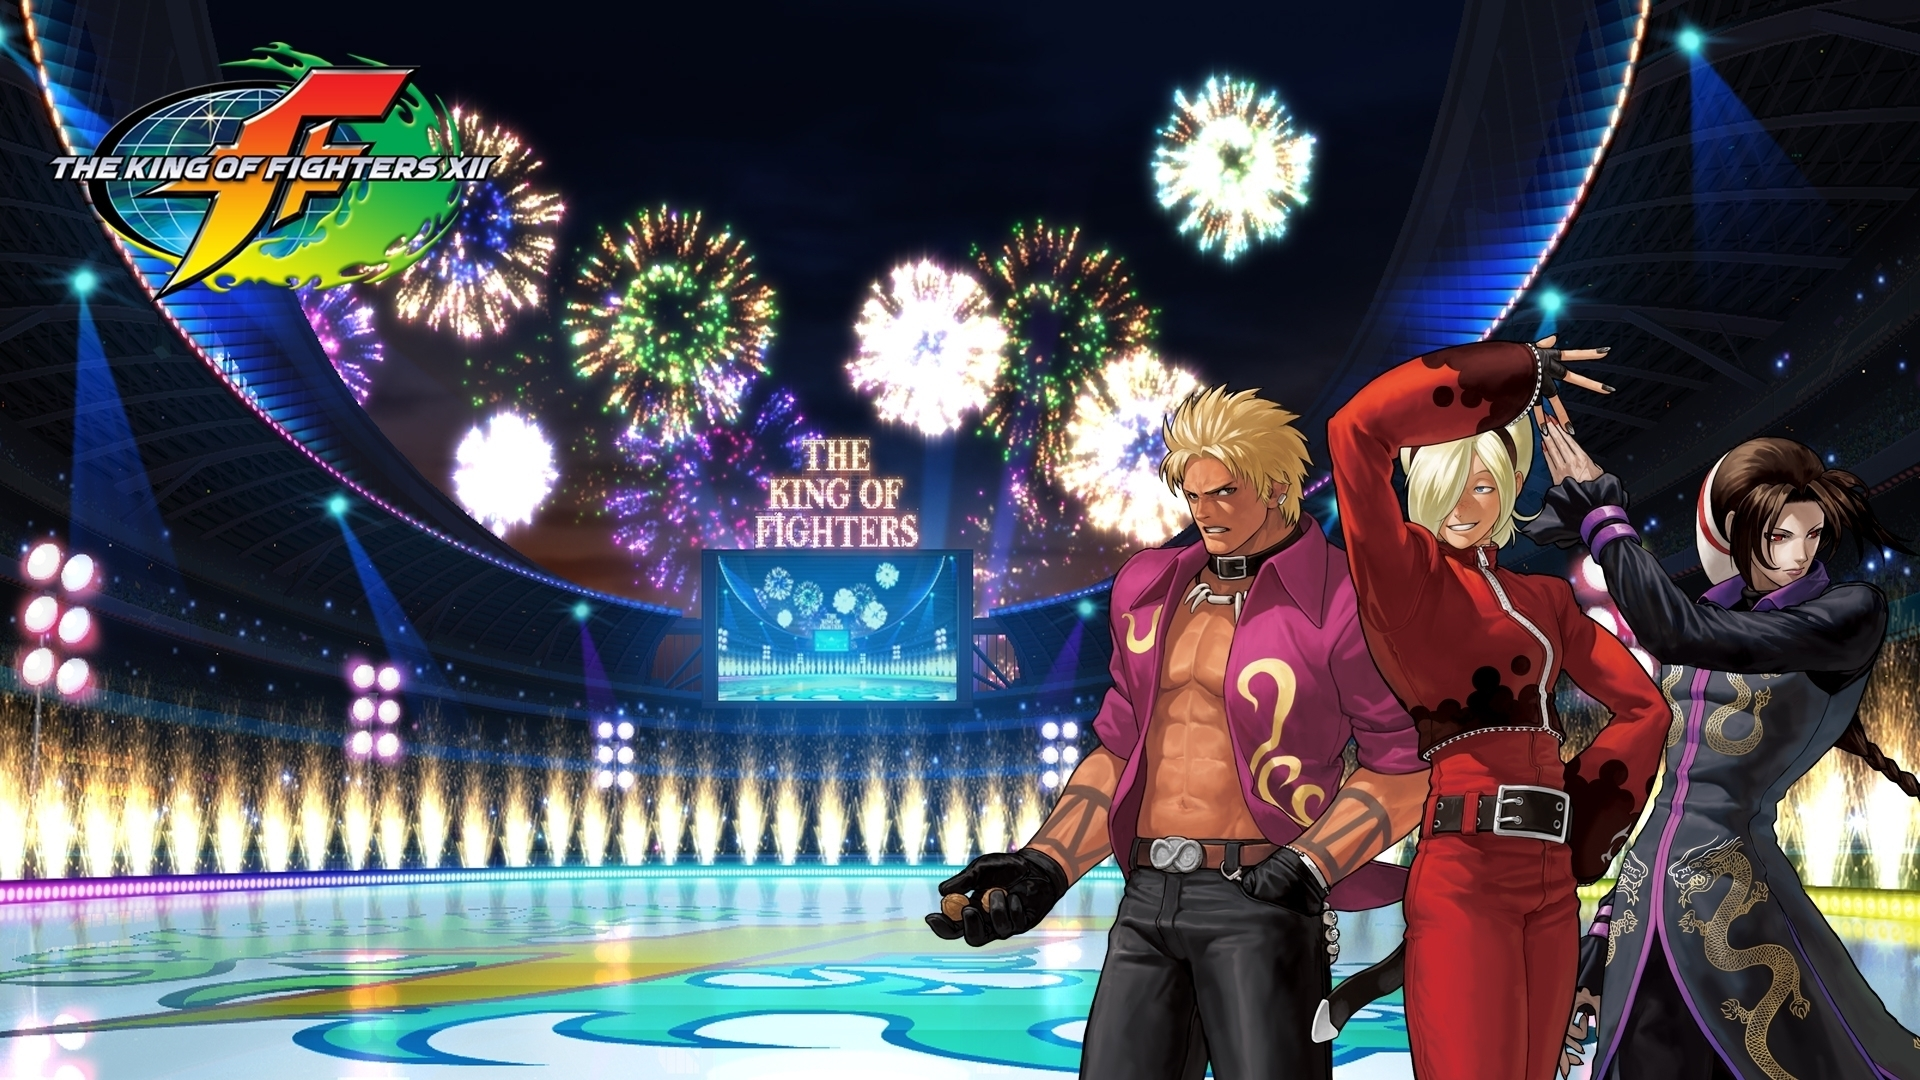 King Of Fighters Hd Wallpaper